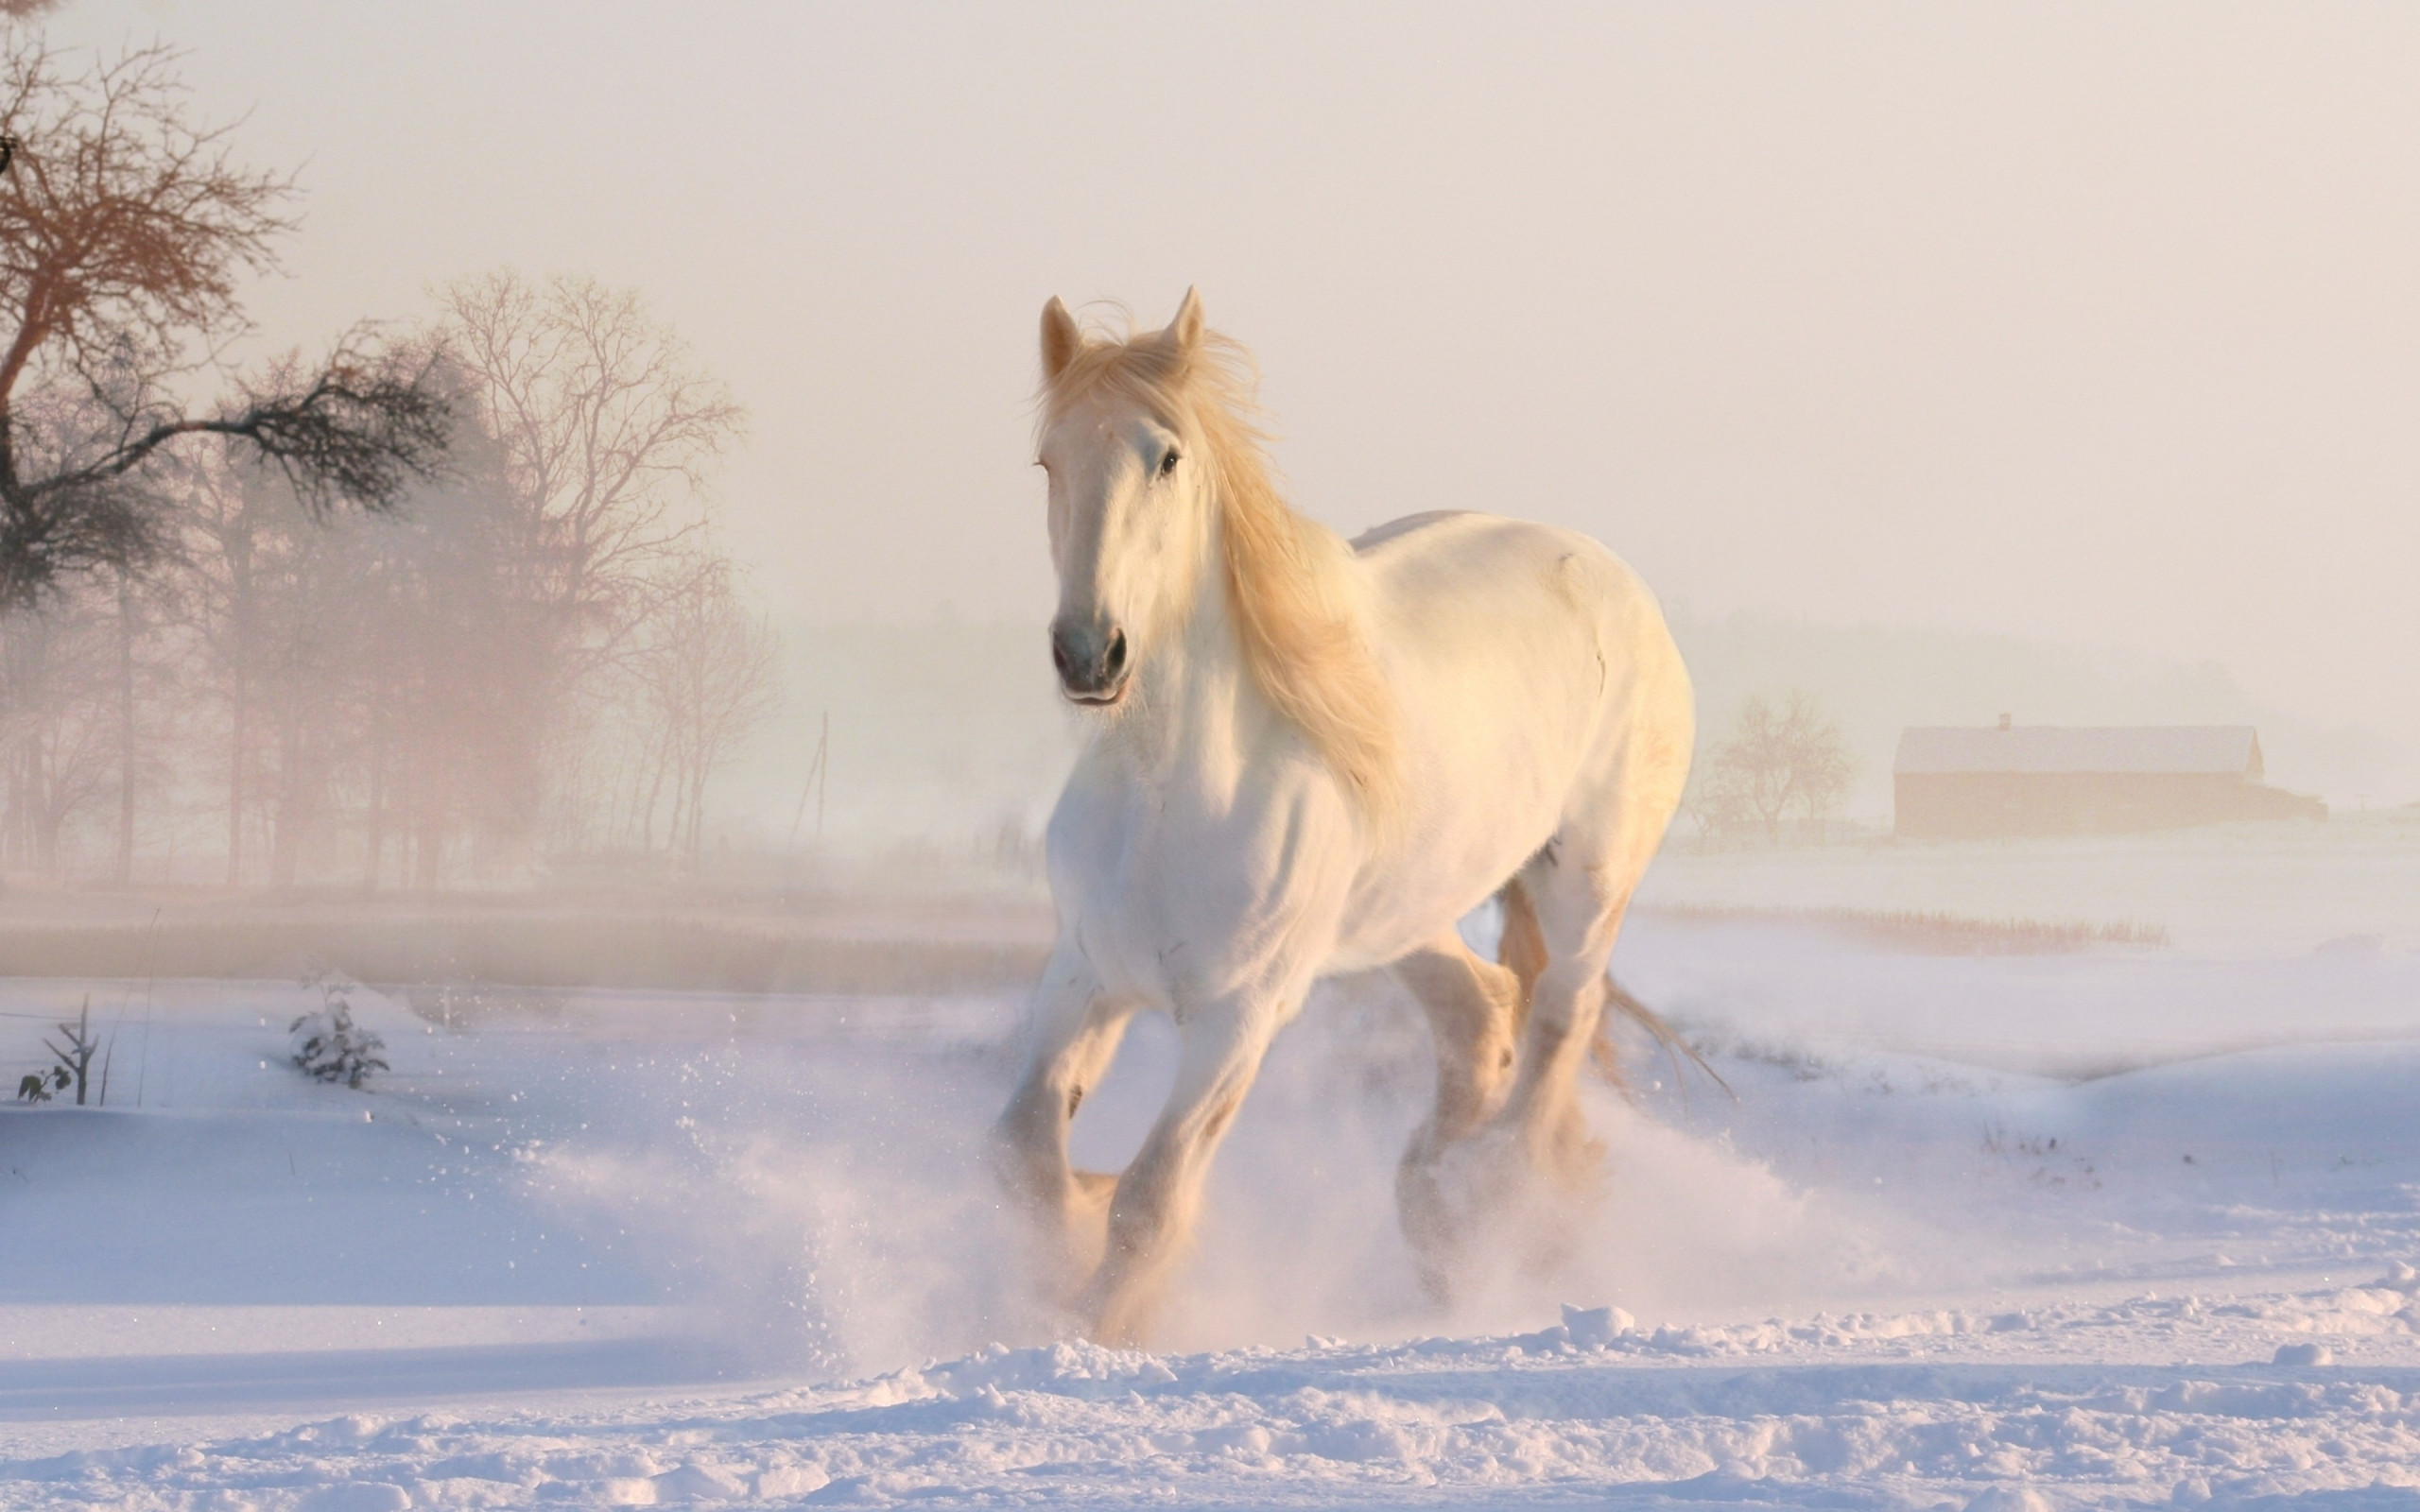 White horse running through snow wallpaper 2560x1600